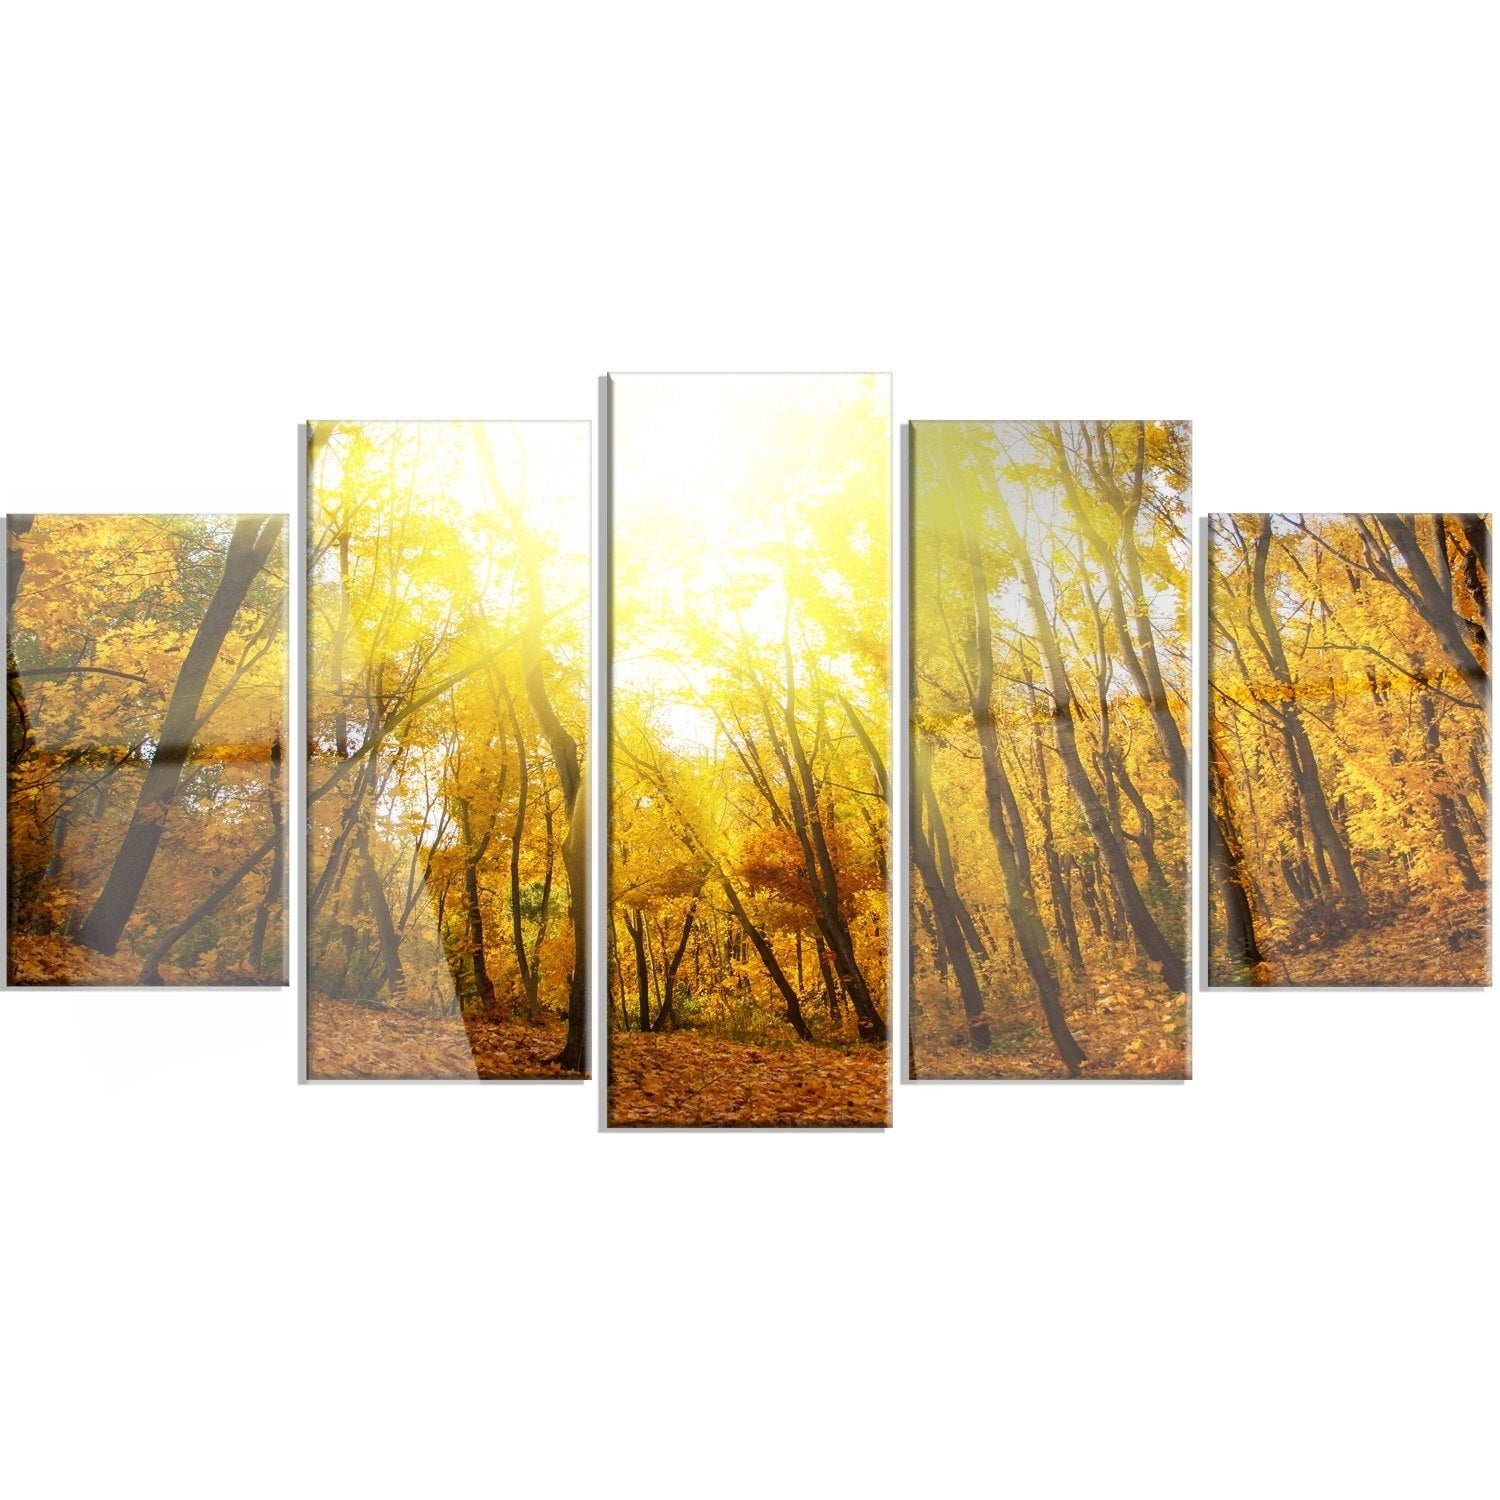 Generous Metallic Wall Art Uk Contemporary - The Wall Art ...